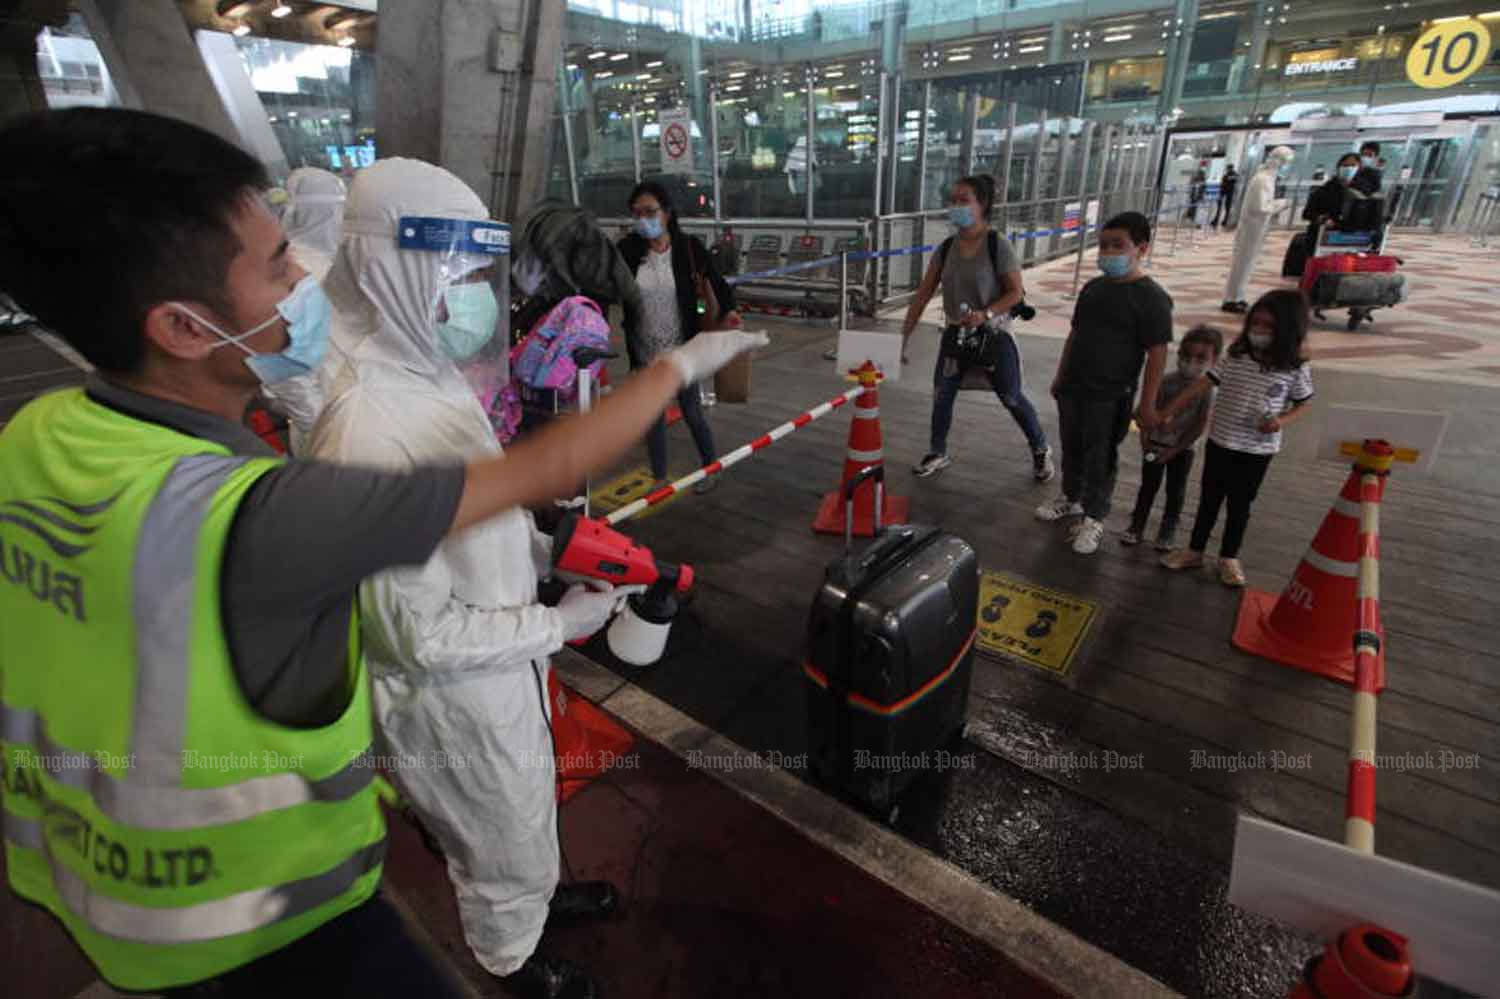 Thai returnees arriving at Suvarnabhumi airport are right away taken into quarantine. The state of emergency is expected to be extended to the end of September  to enable continued quarantine of inbound people to effectively curb Covid-19. (Photo: Arnun Chonmahatrakool)